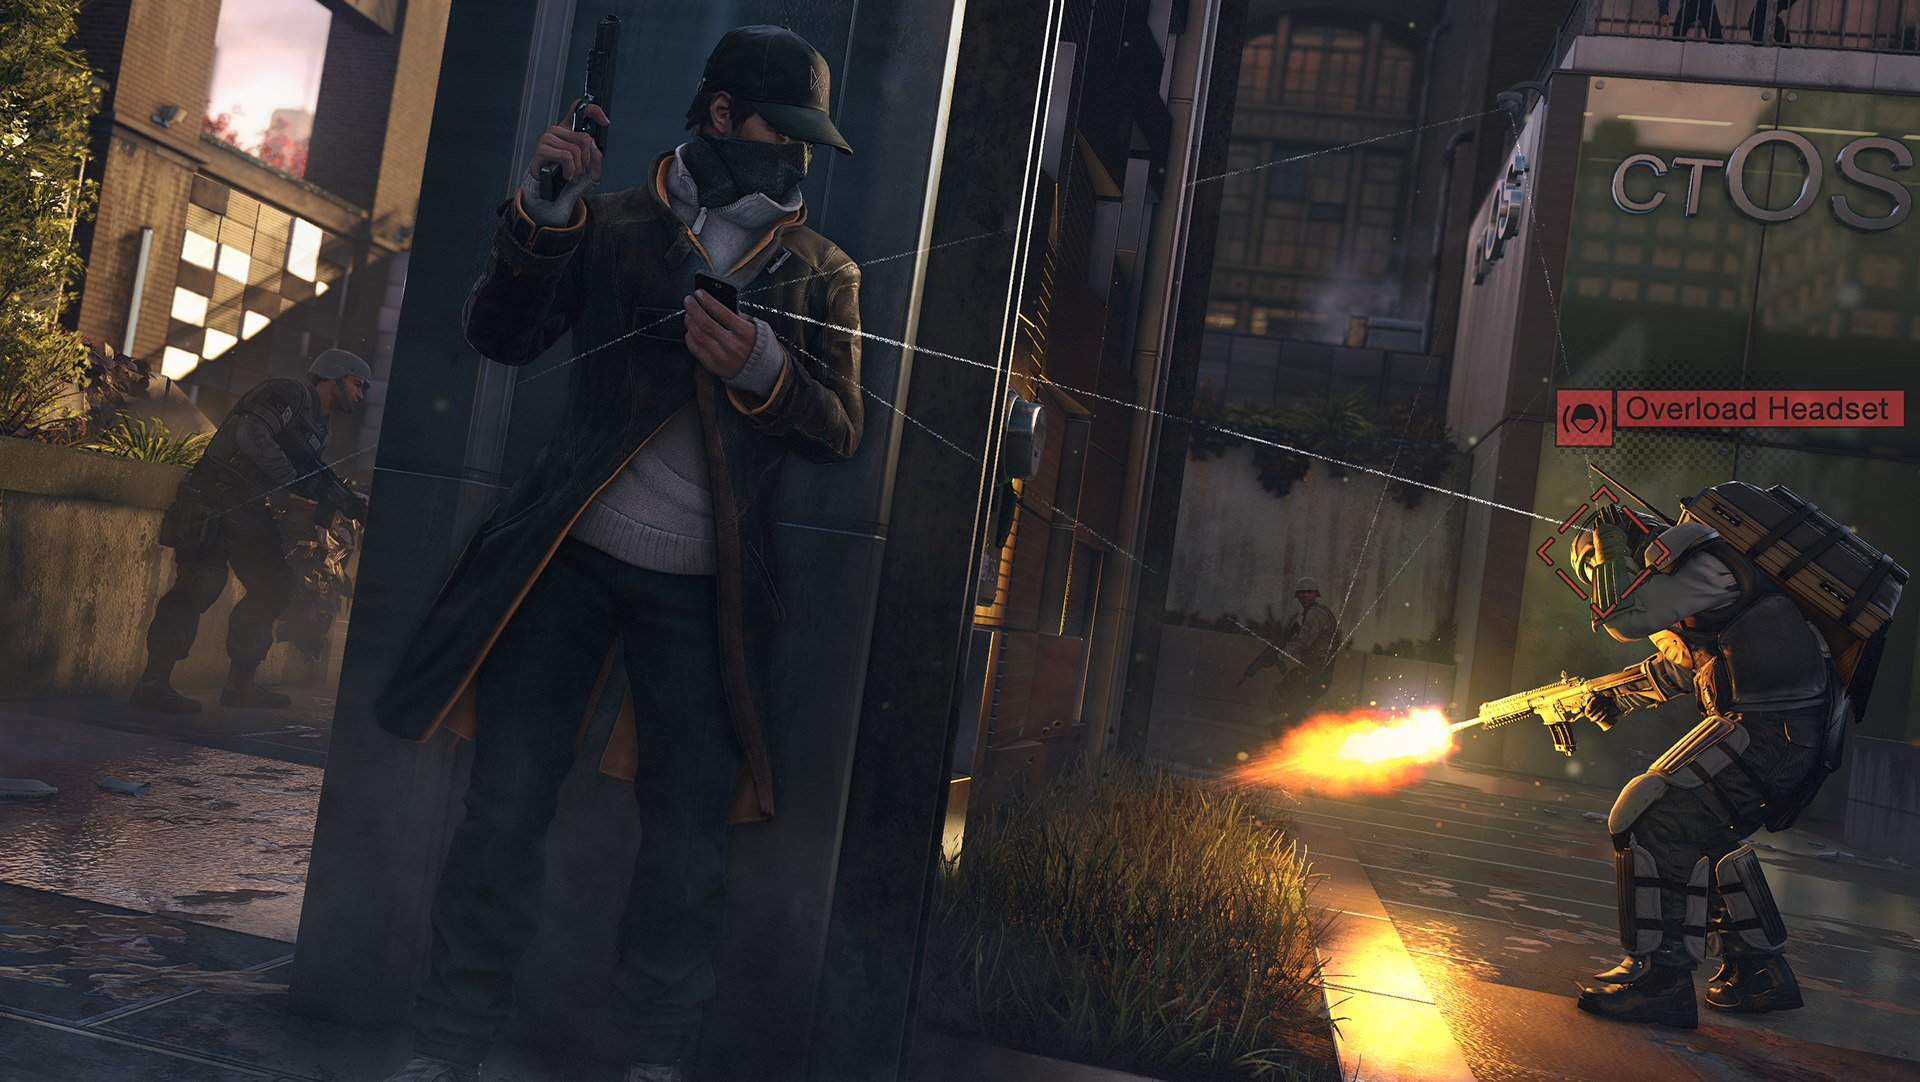 watch_dogs_screen_Aiden_hide